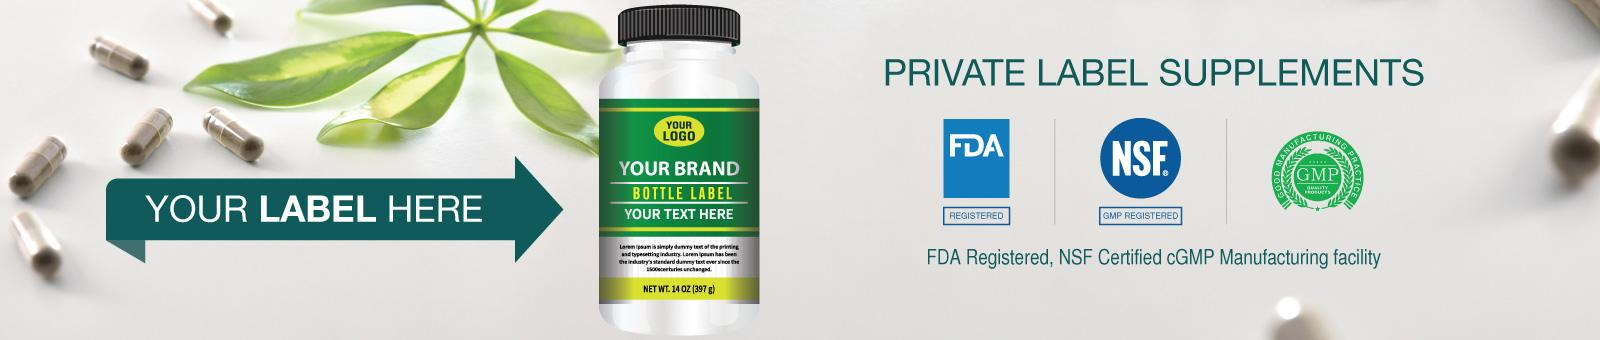 Private Label Supplements Banner